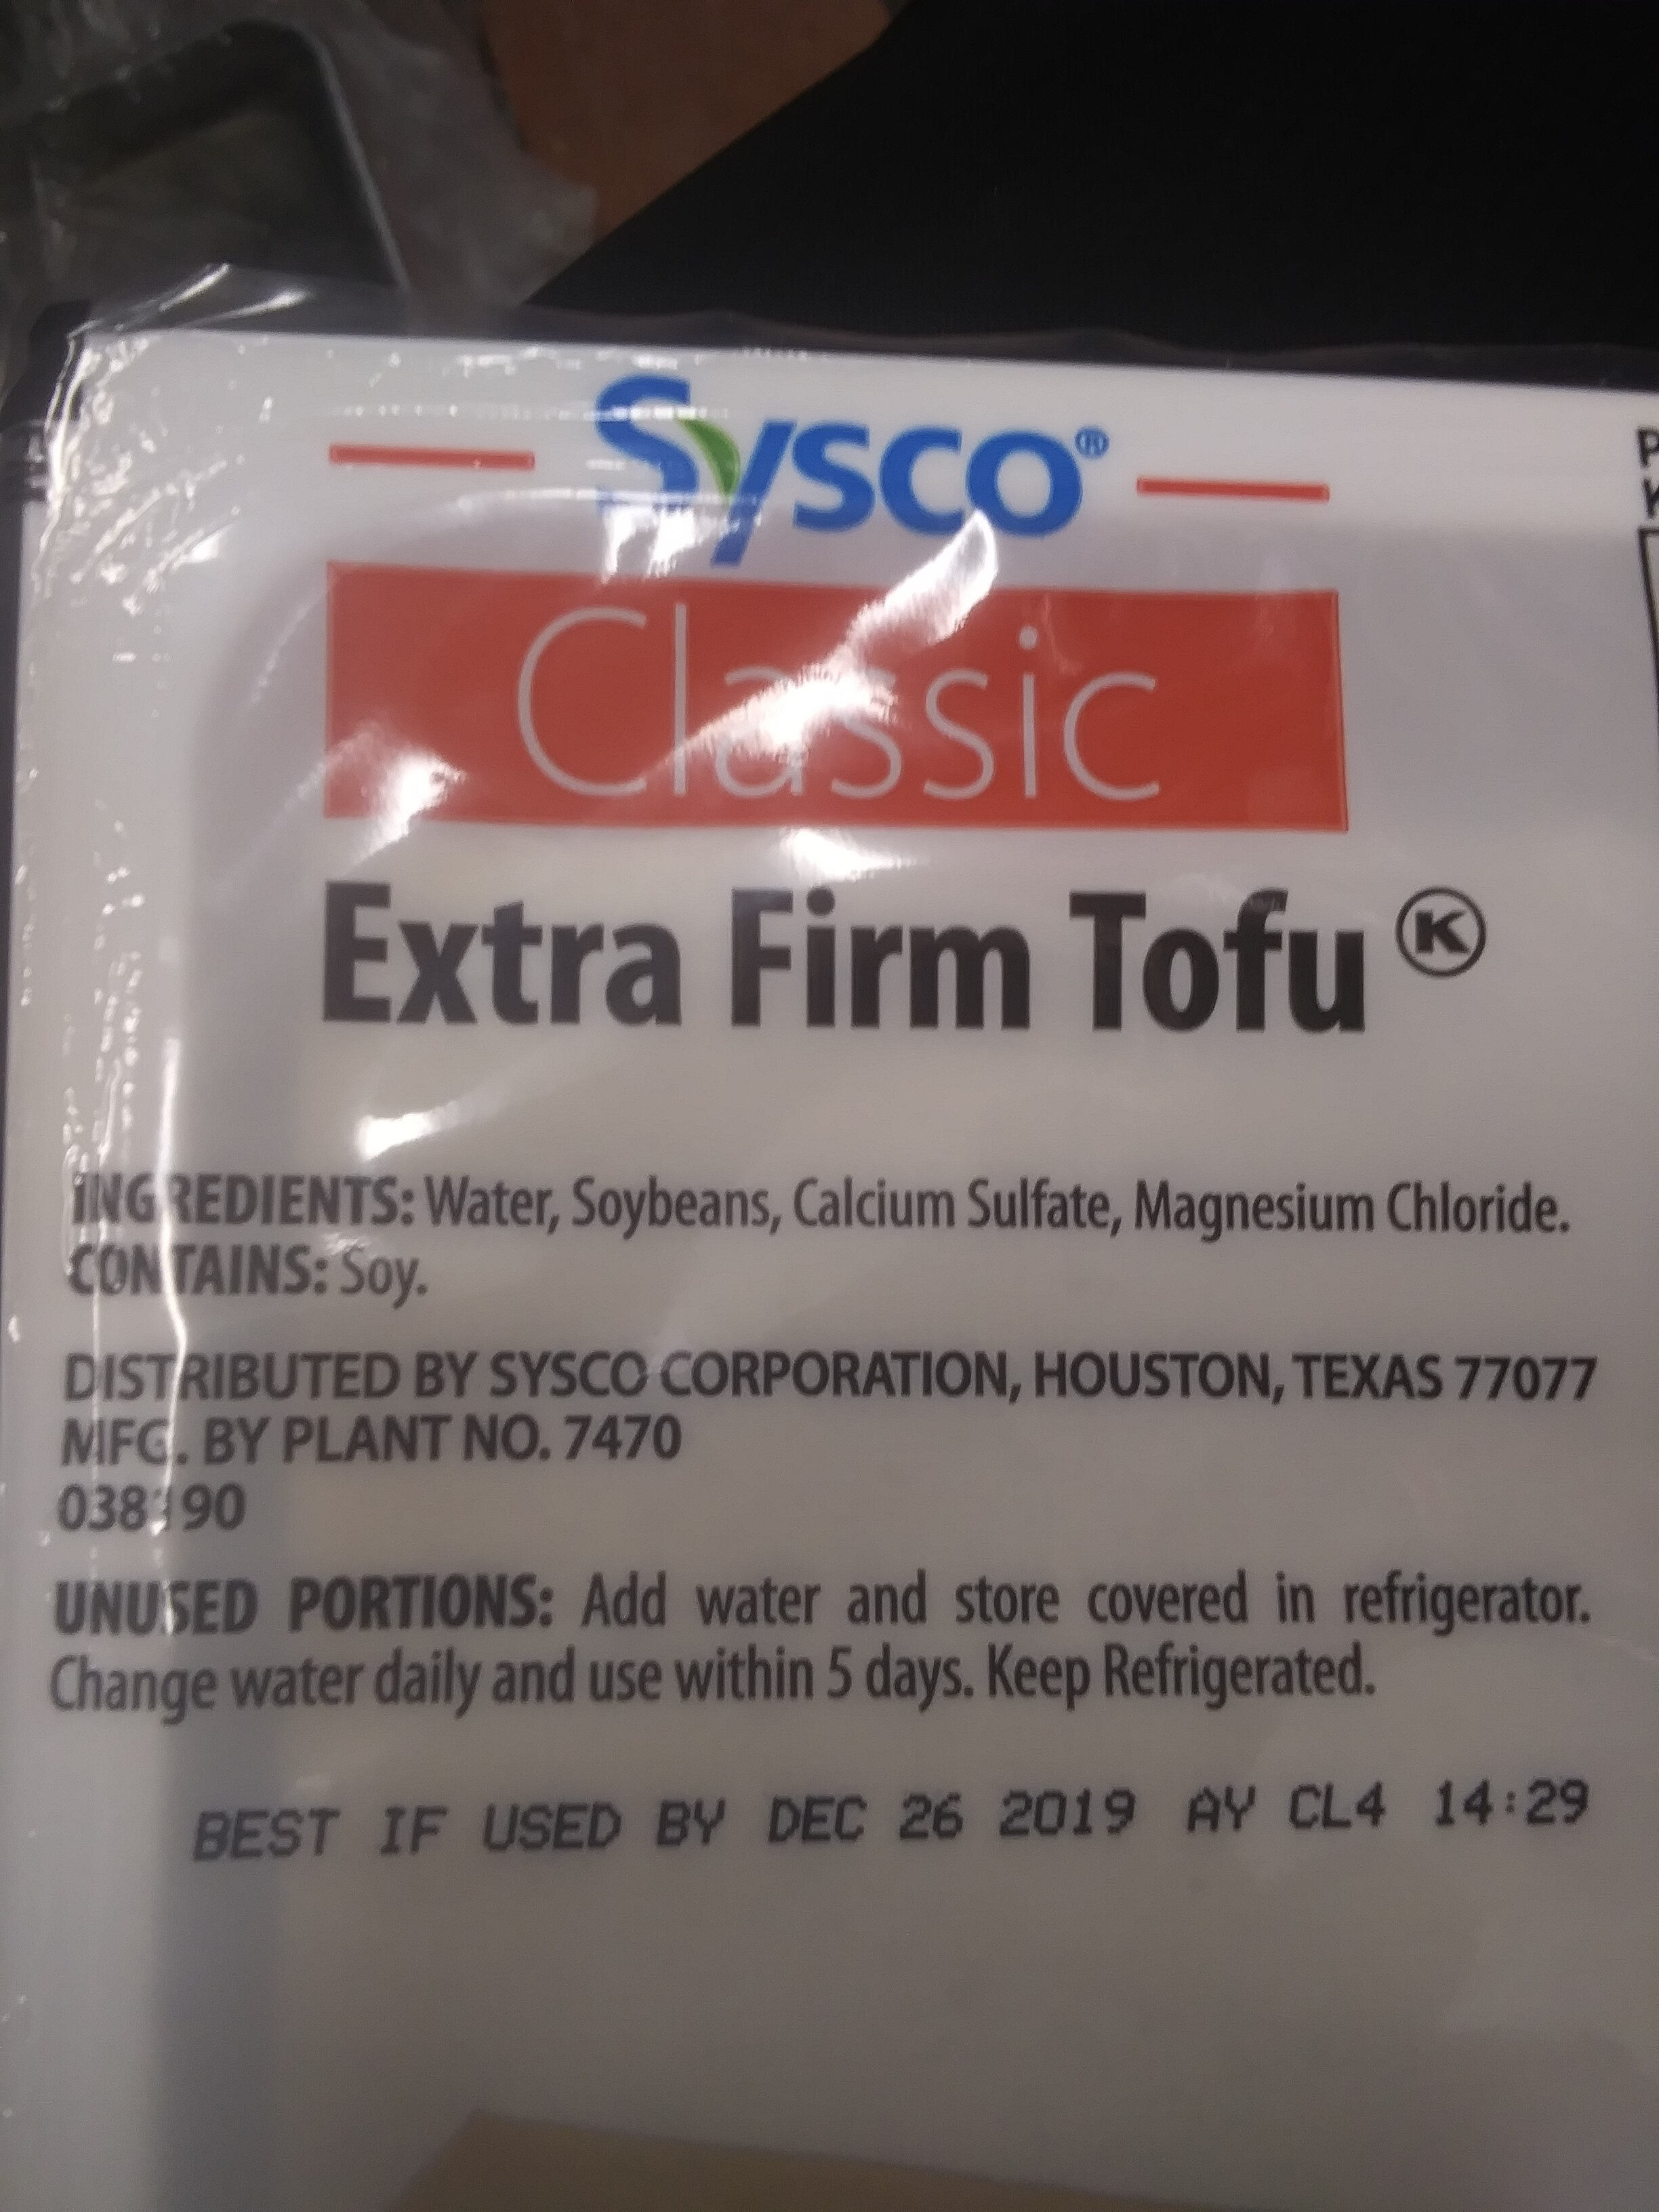 sysco classic extra firm tofu - Ingredients